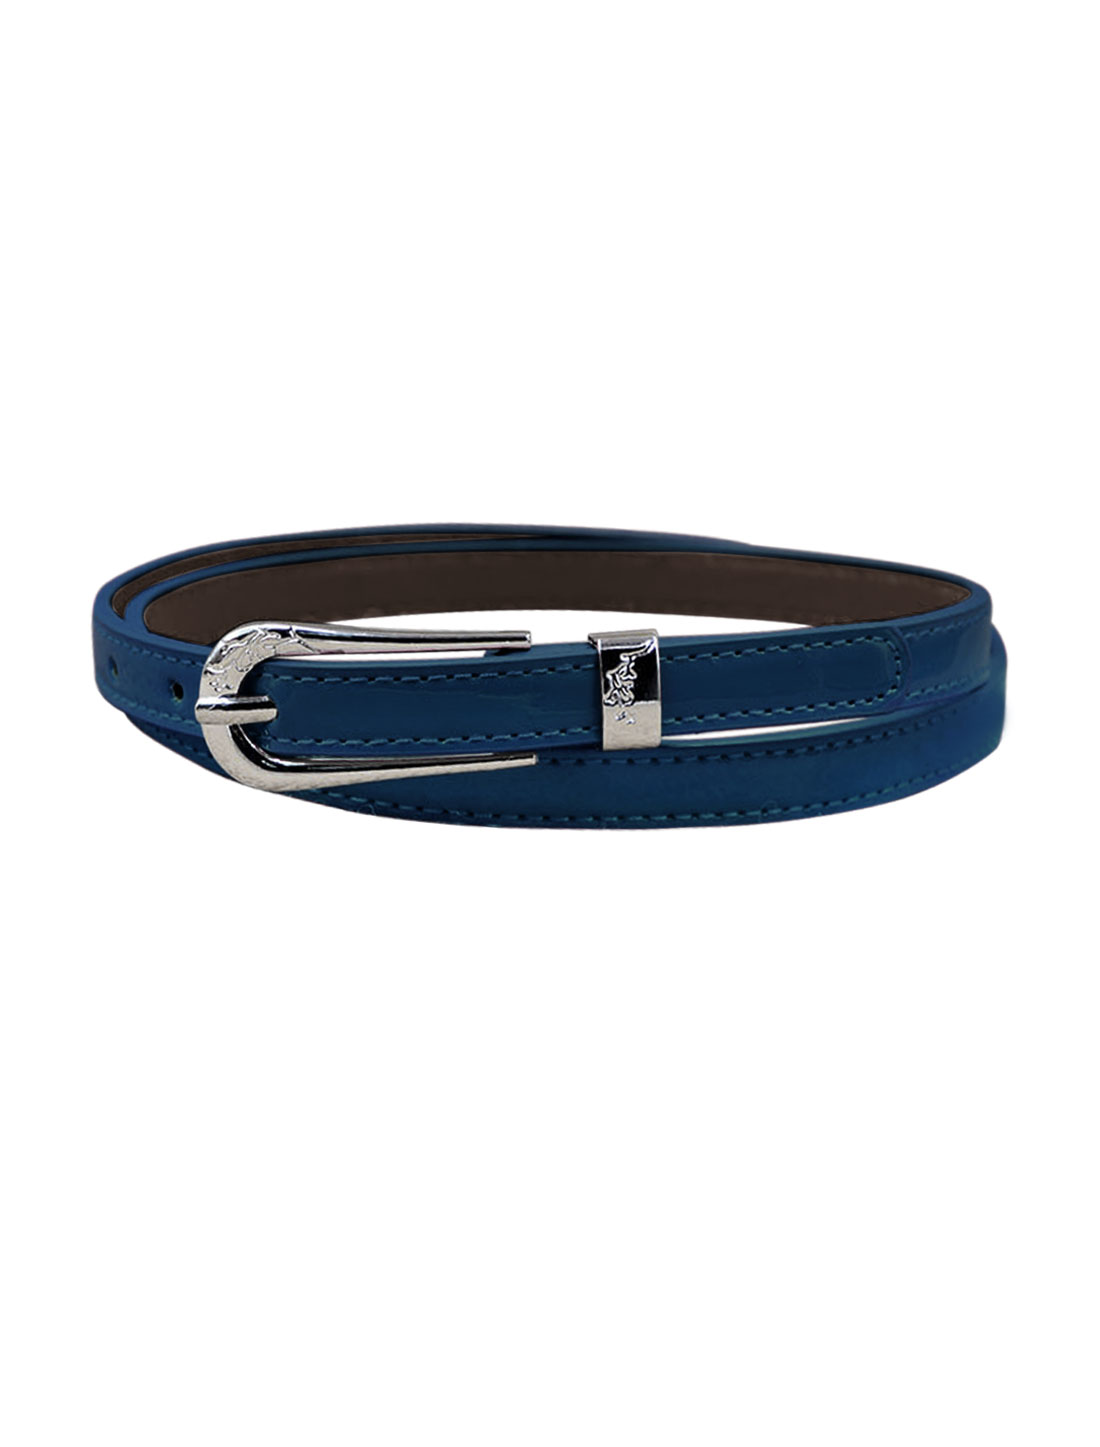 Women Single Pin Buckle Adjustable PU Waist Belt Blue